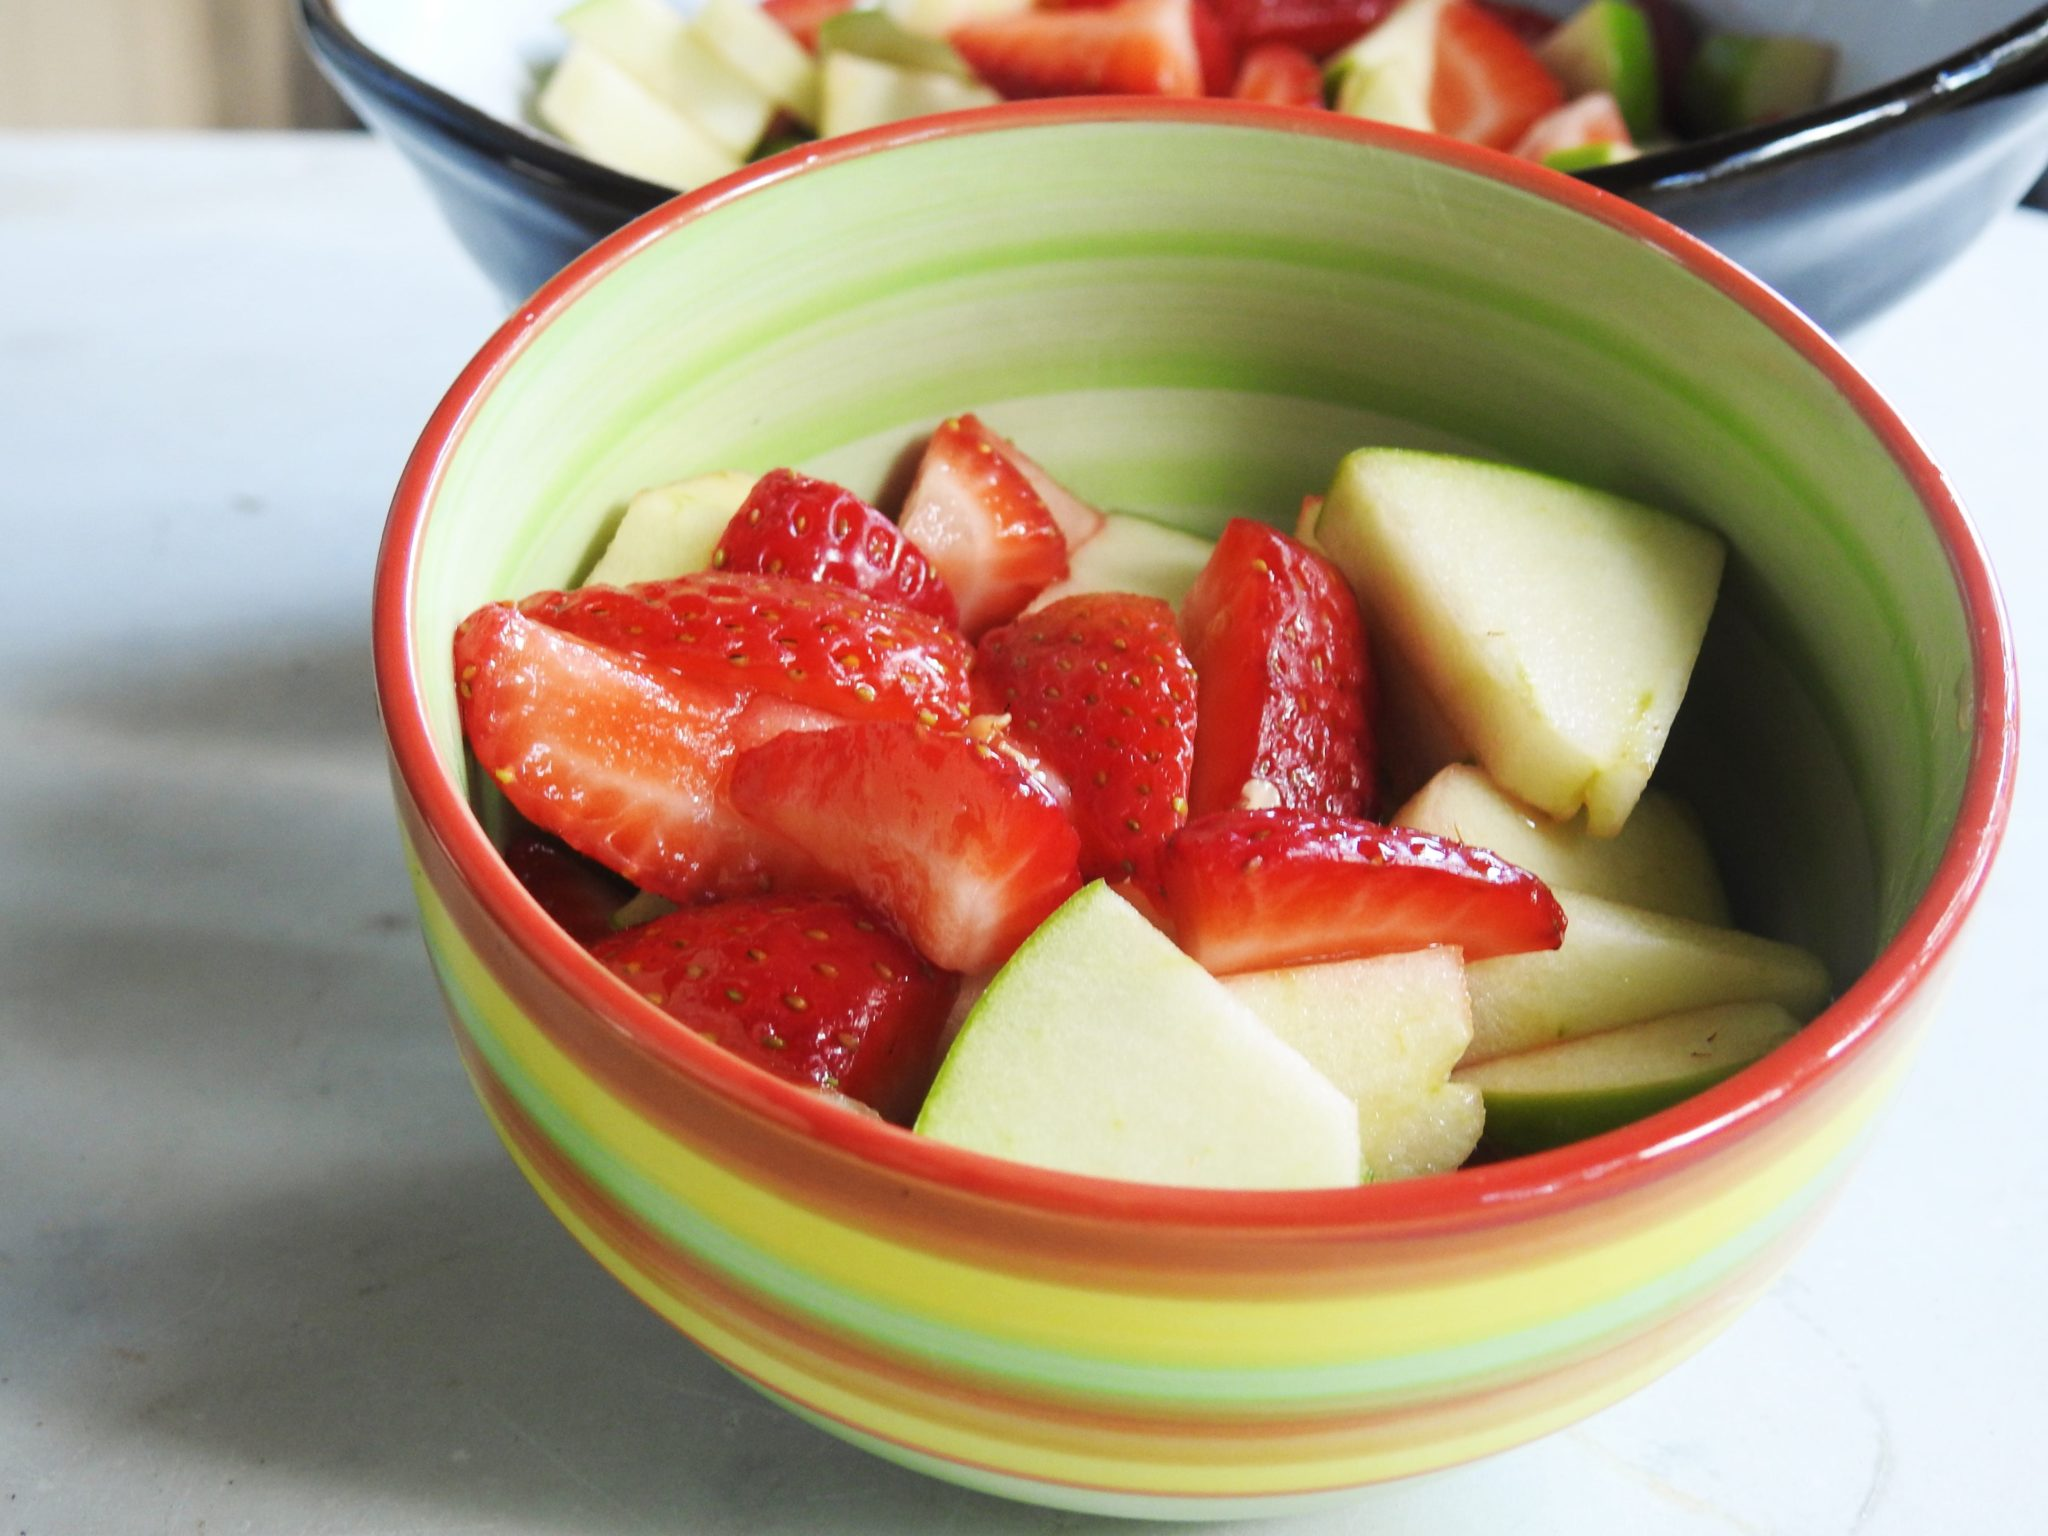 Strawberry and Green Apple Thai Fruit Salad